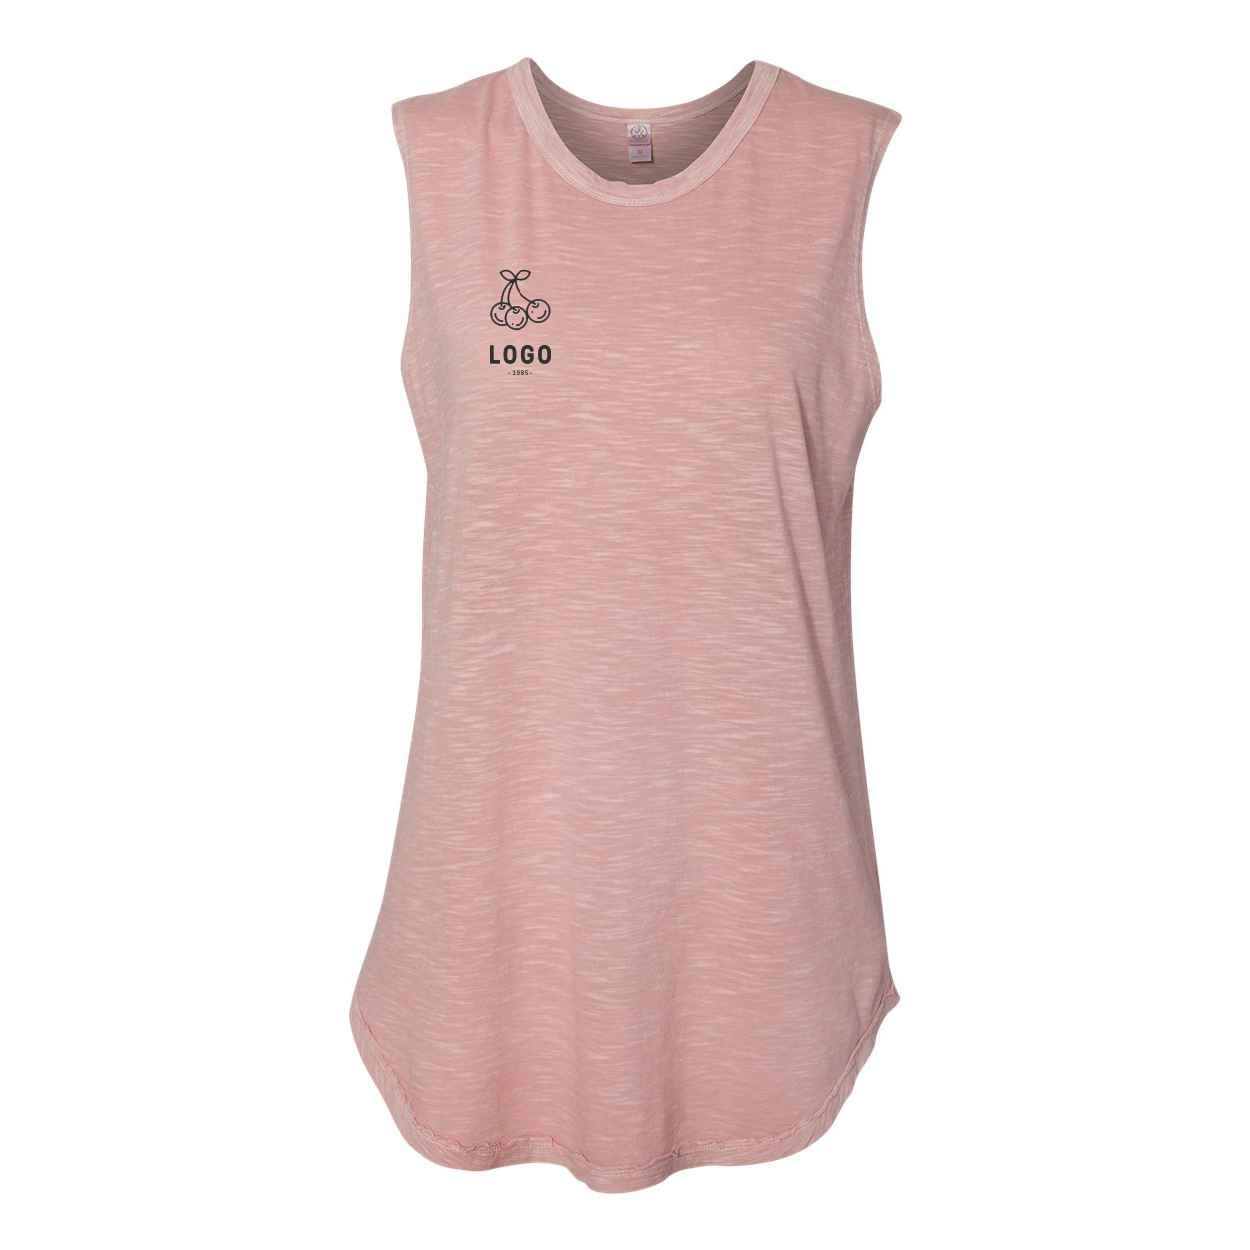 122726 women s inside out sleeveless tee one color imprint